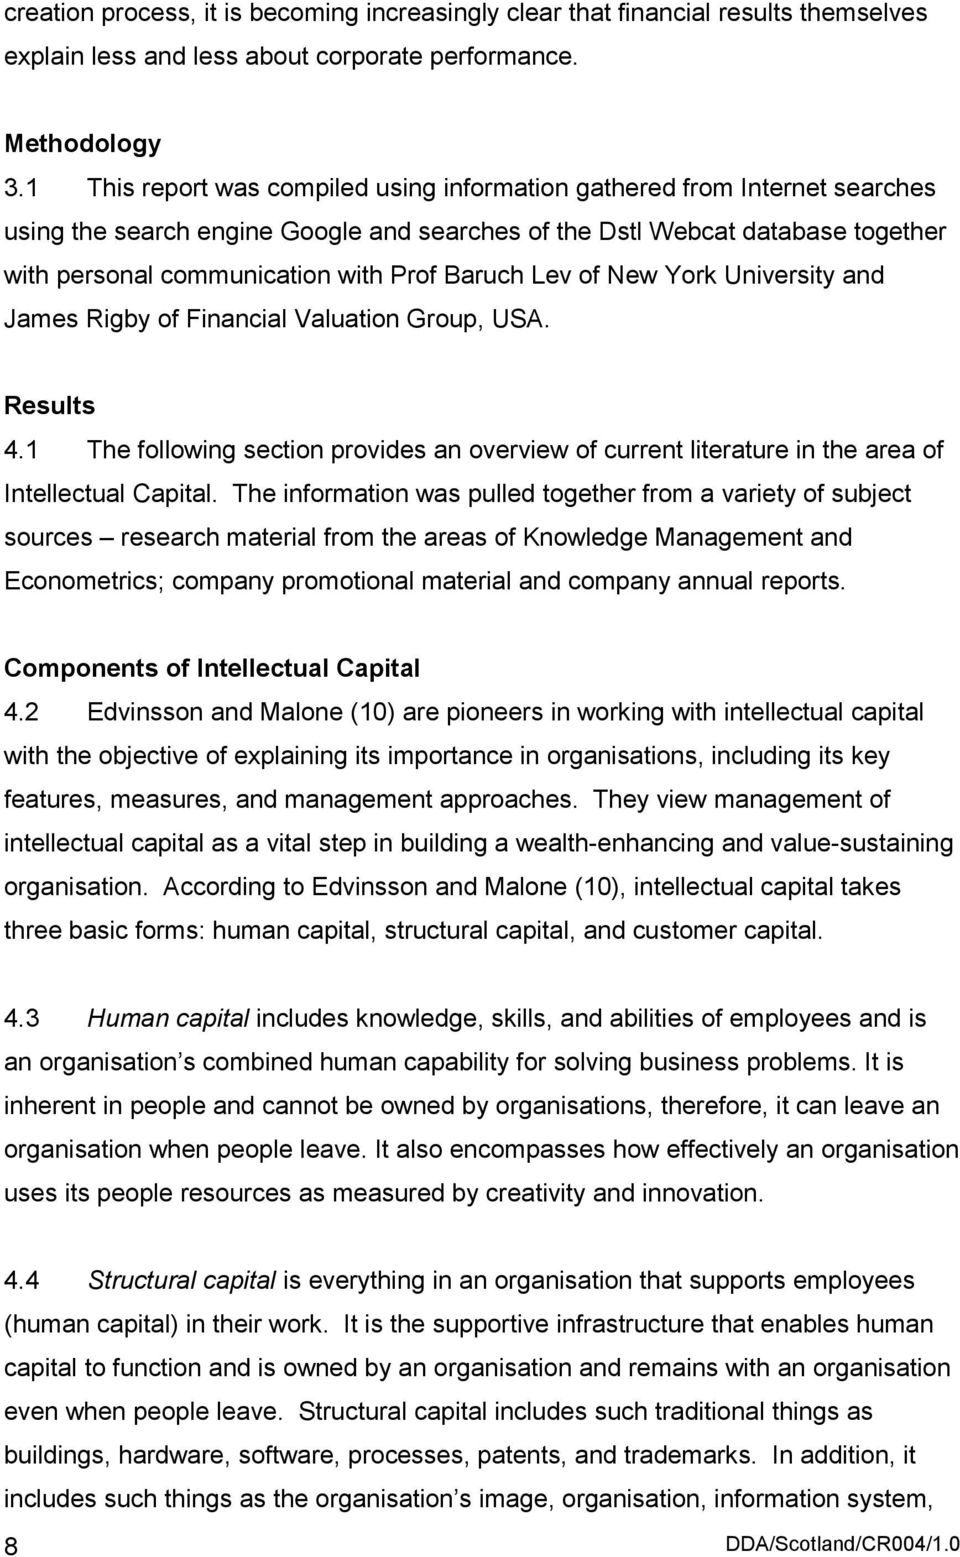 Baruch Lev of New York University and James Rigby of Financial Valuation Group, USA. Results 4.1 The following section provides an overview of current literature in the area of Intellectual Capital.